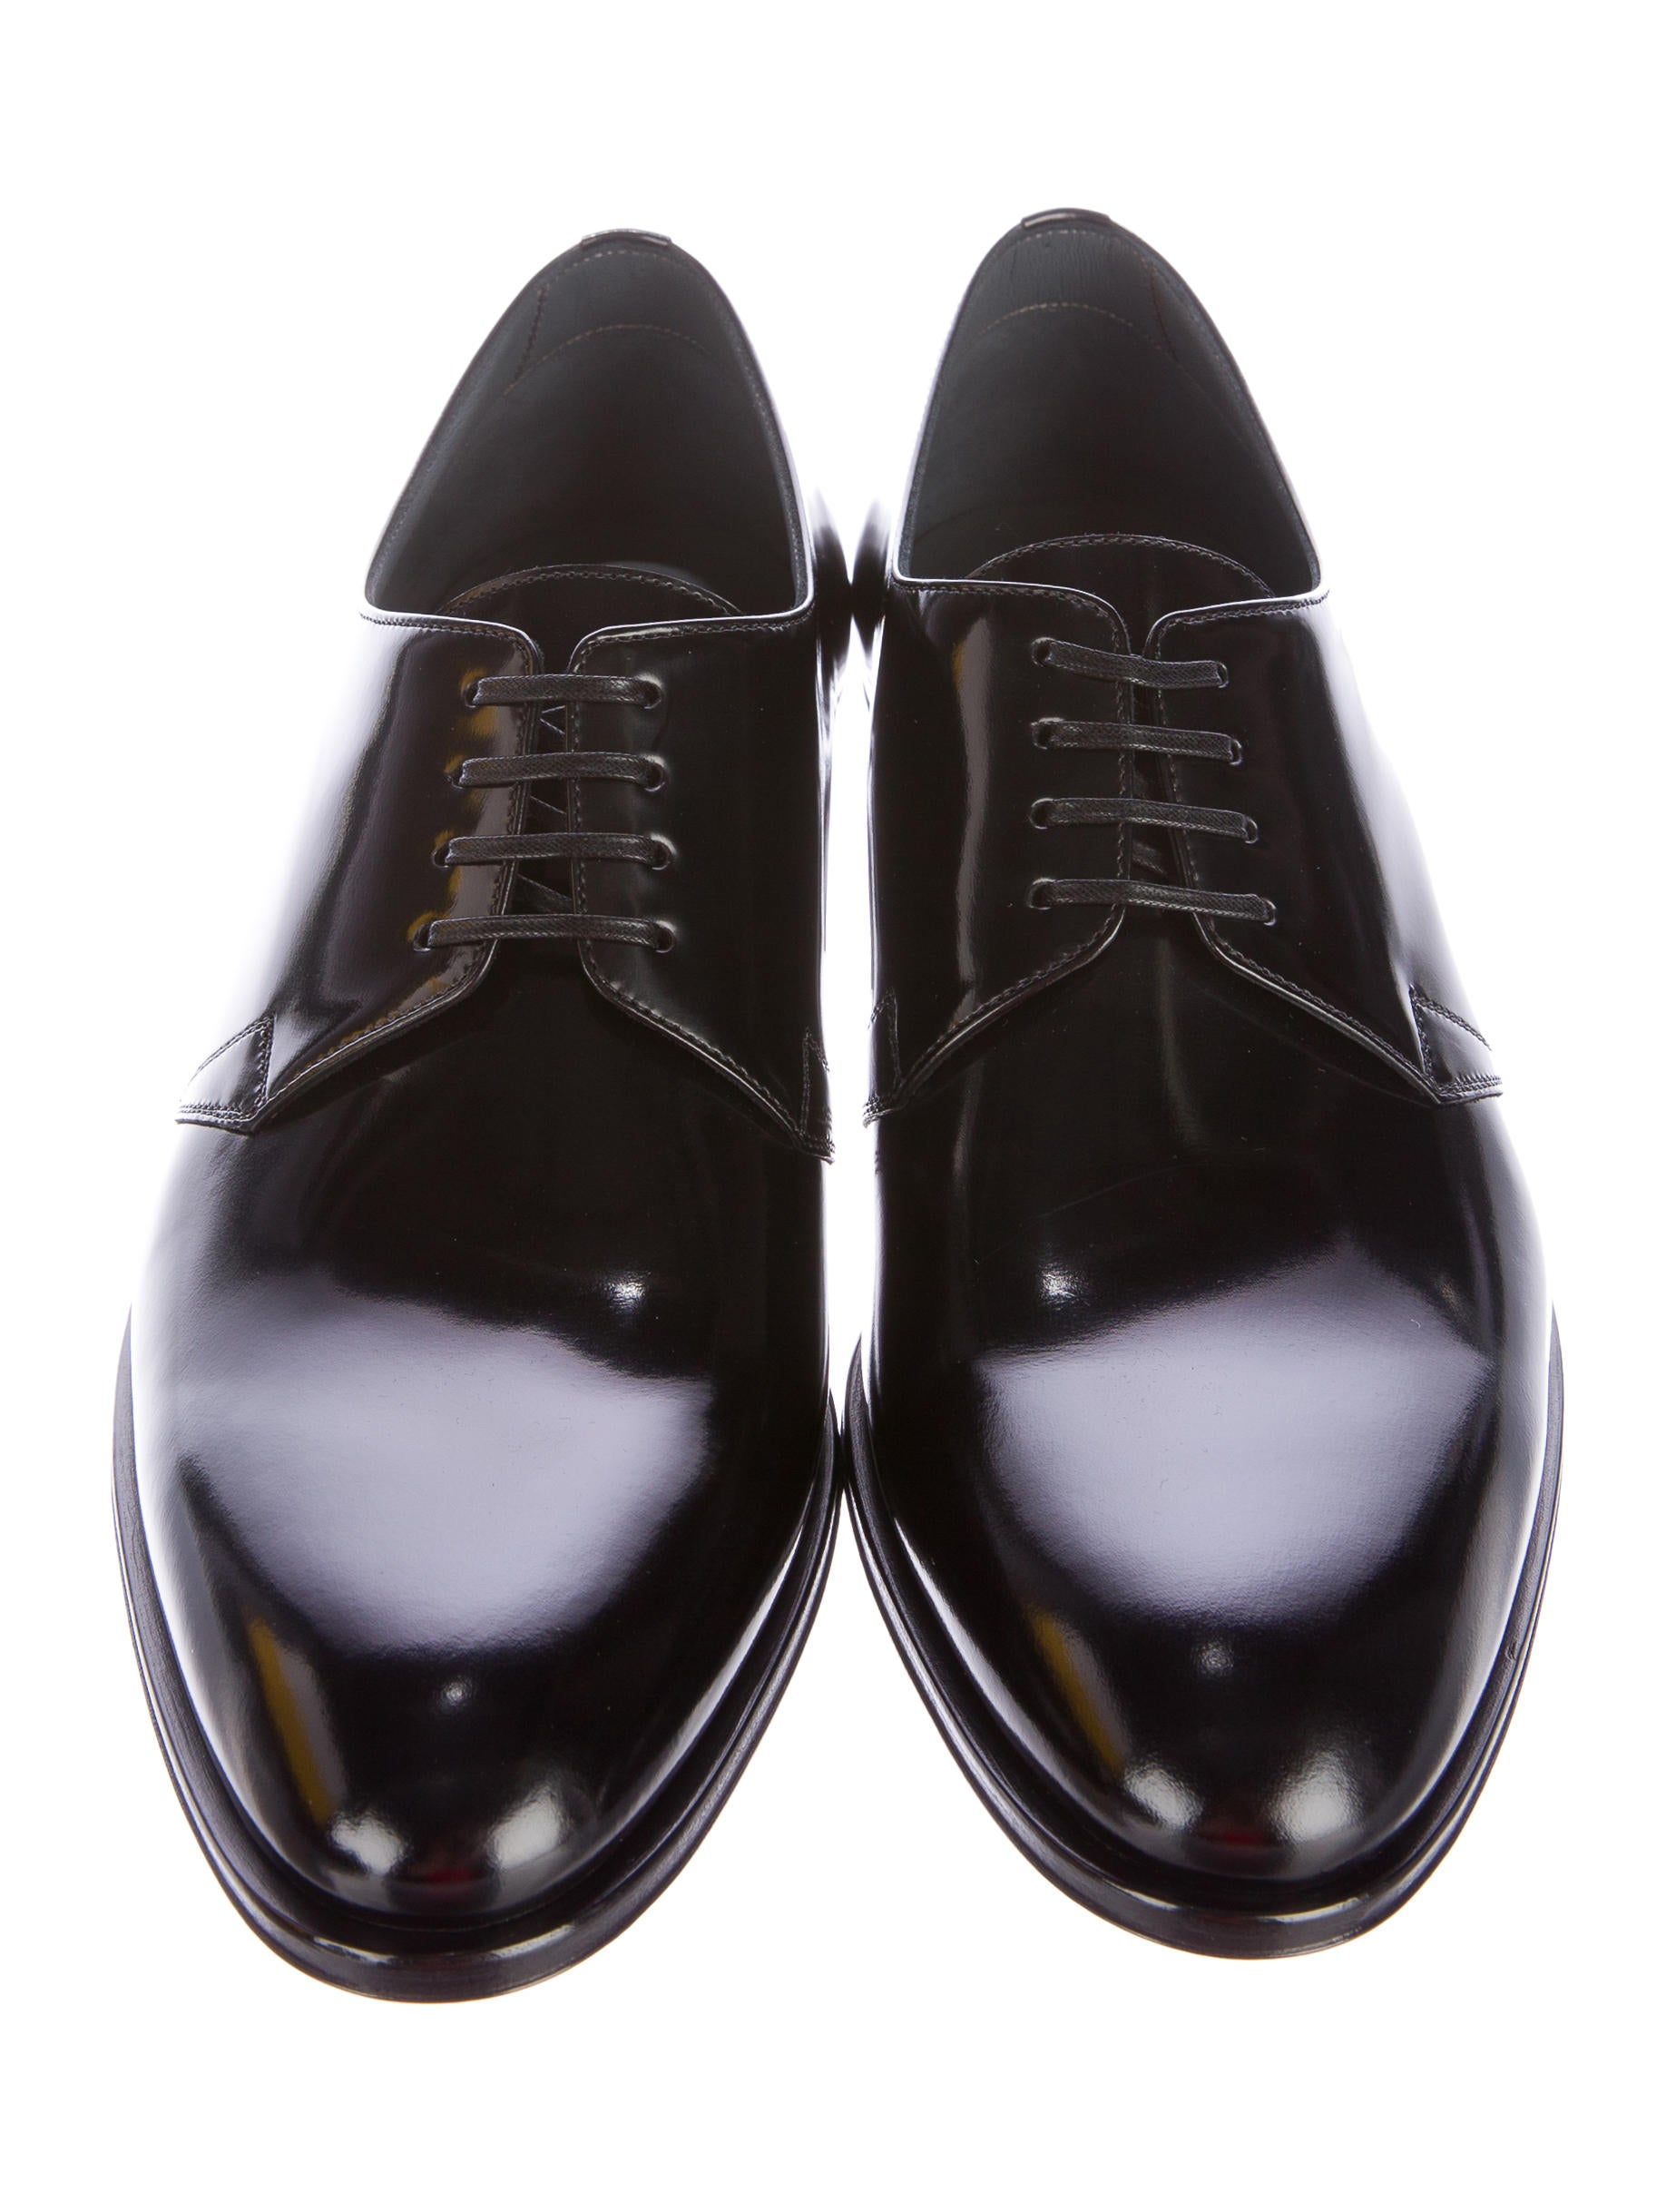 Dior Homme Black Leather Derby Shoes